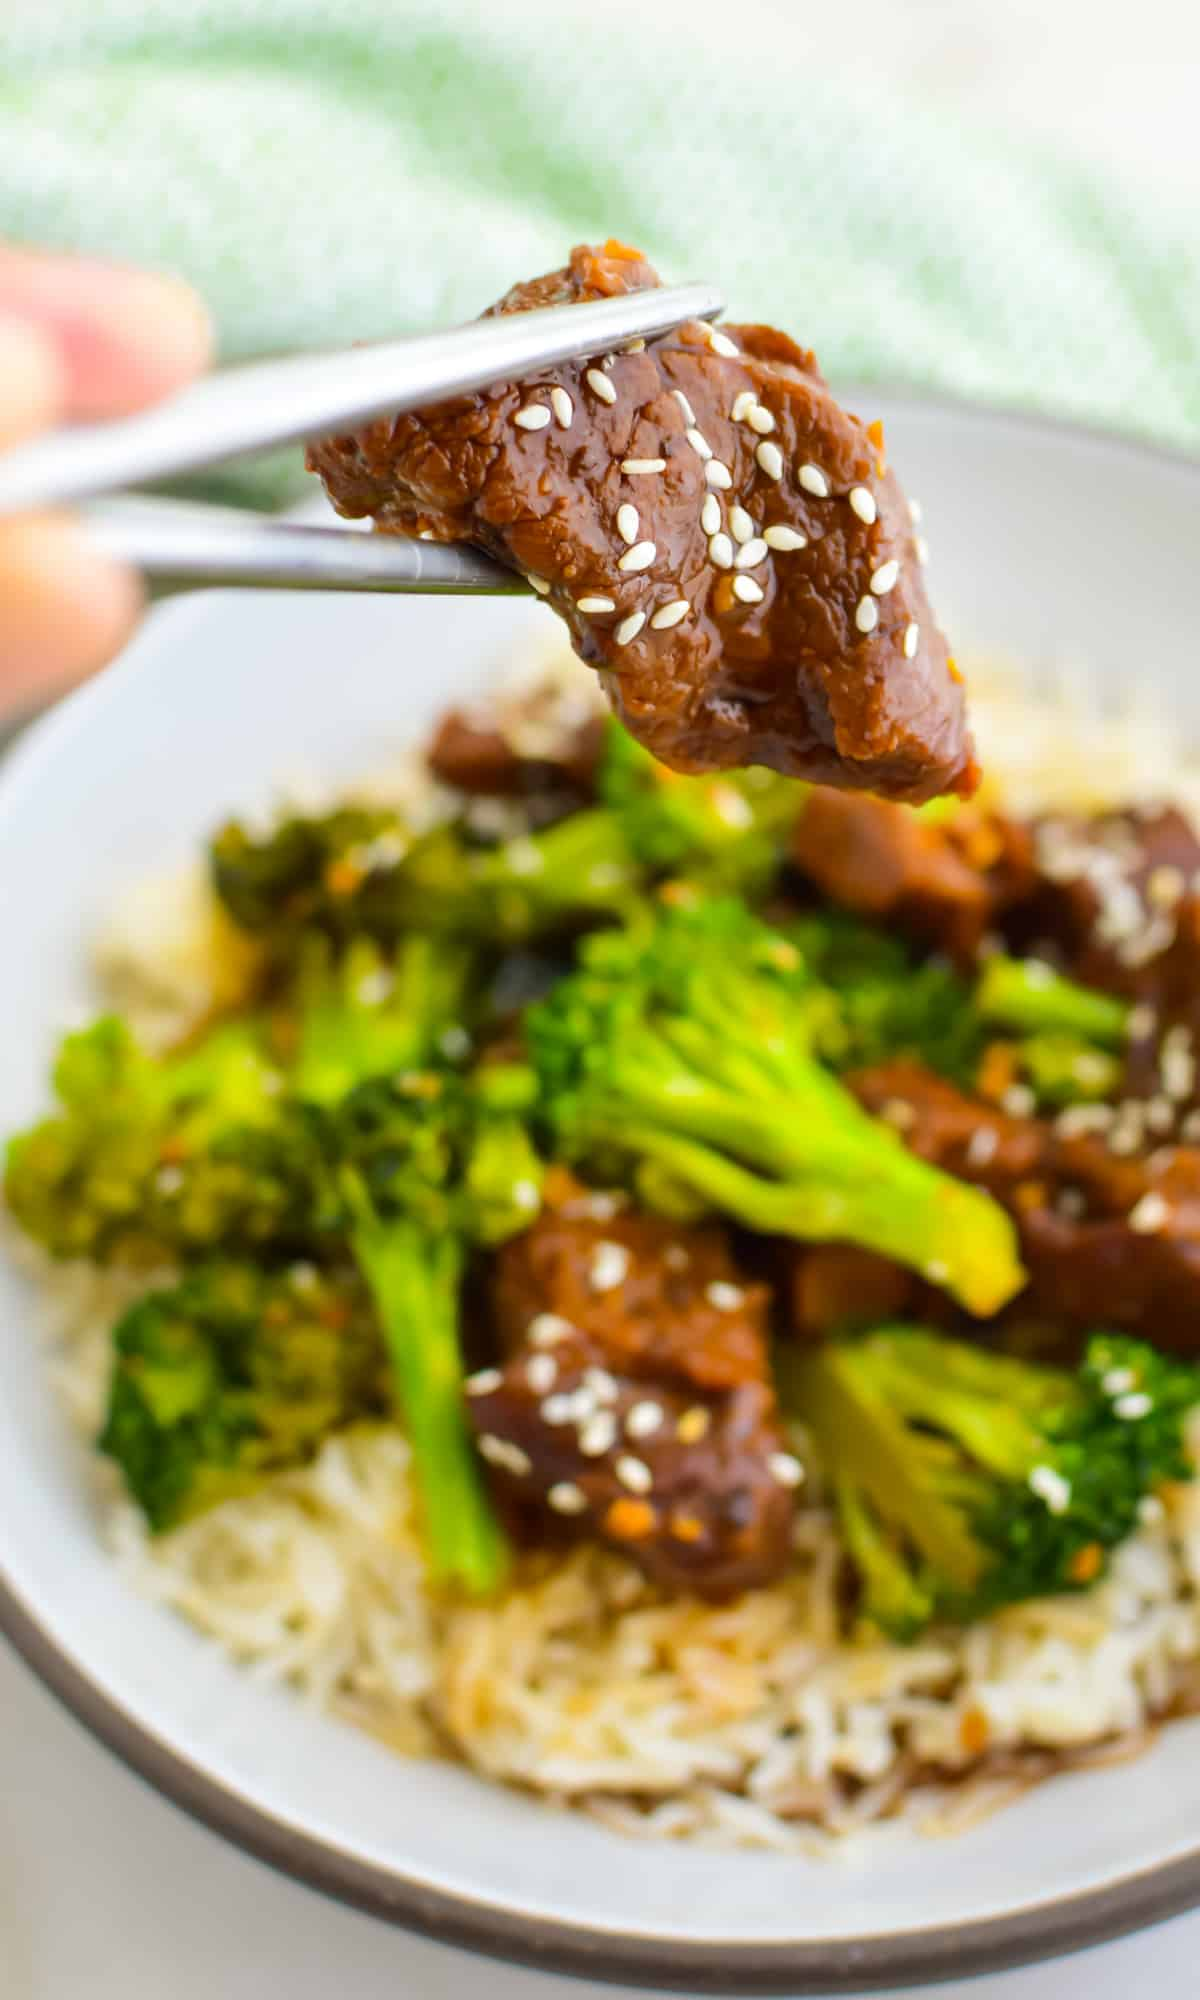 Skip take out and make this delicious homemade Slow Cooker Beef and Broccoli instead. Tender beef, crunchy broccoli, and an enticing sauce come together to make the best weeknight meal. via @jugglingactmama